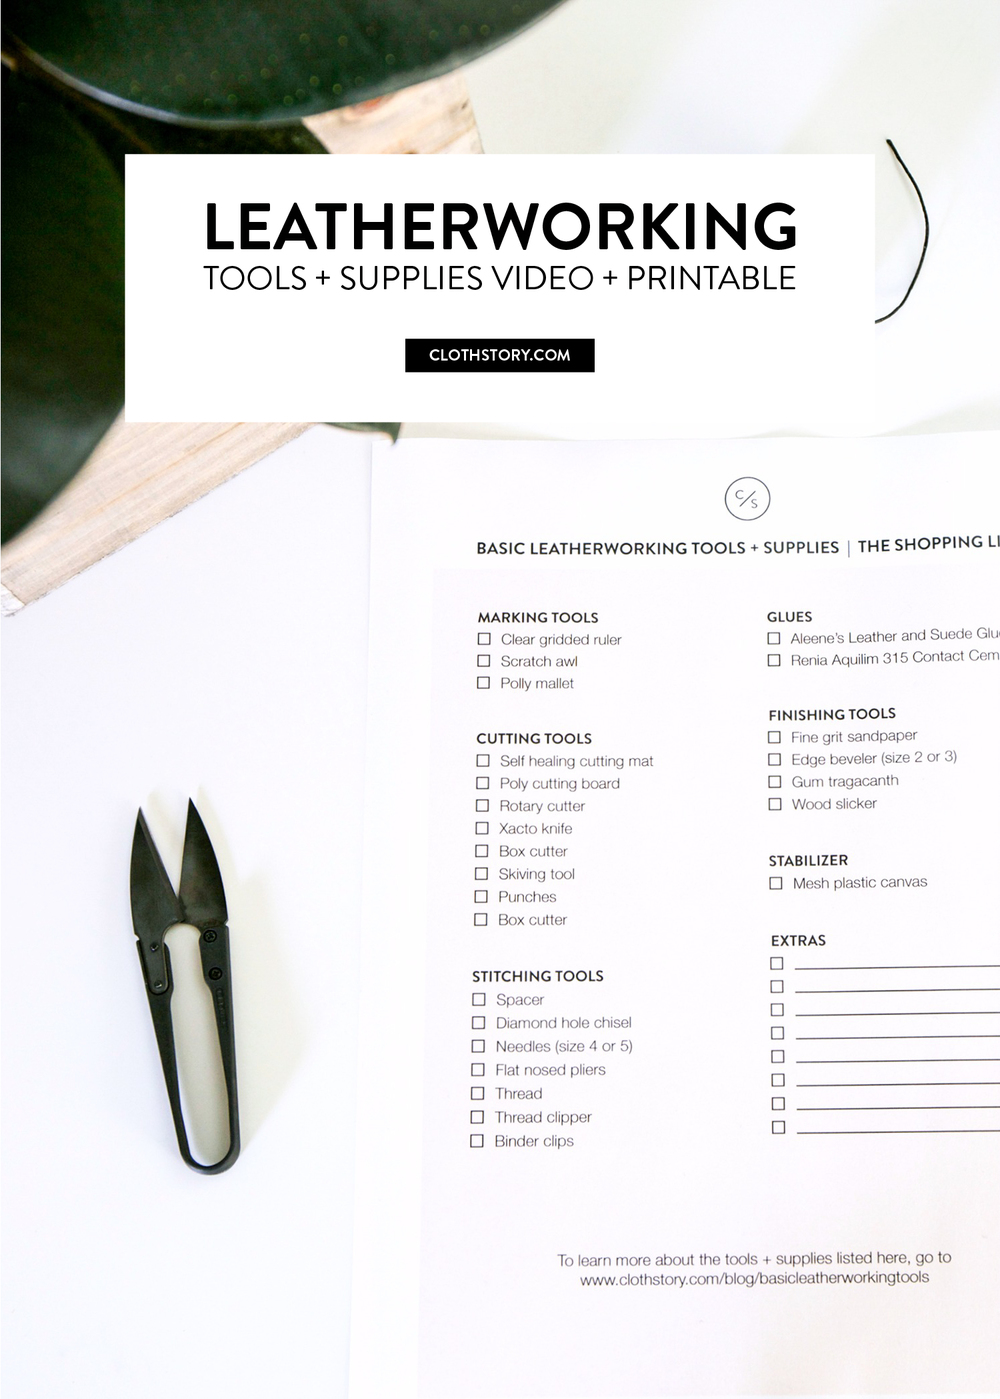 Leatherworking tools and supplies video with free printable shopping list. - www.clothstory.com